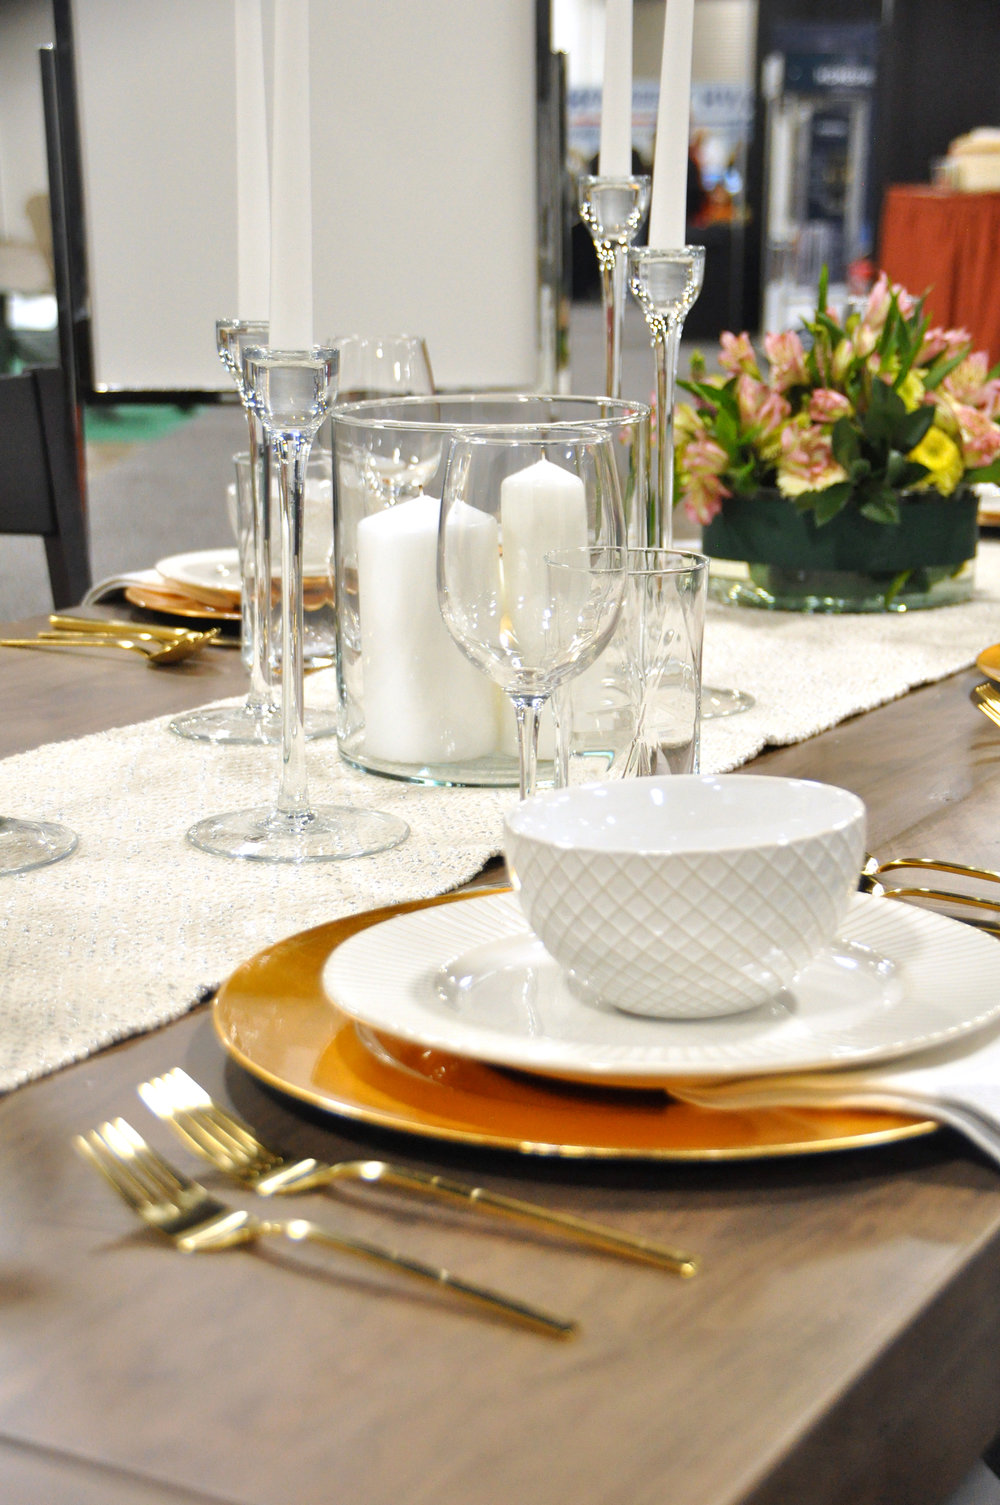 Home-Show-Feminine-Sophisticated-Elegant-Tablescape-Table-Setting-2.jpg